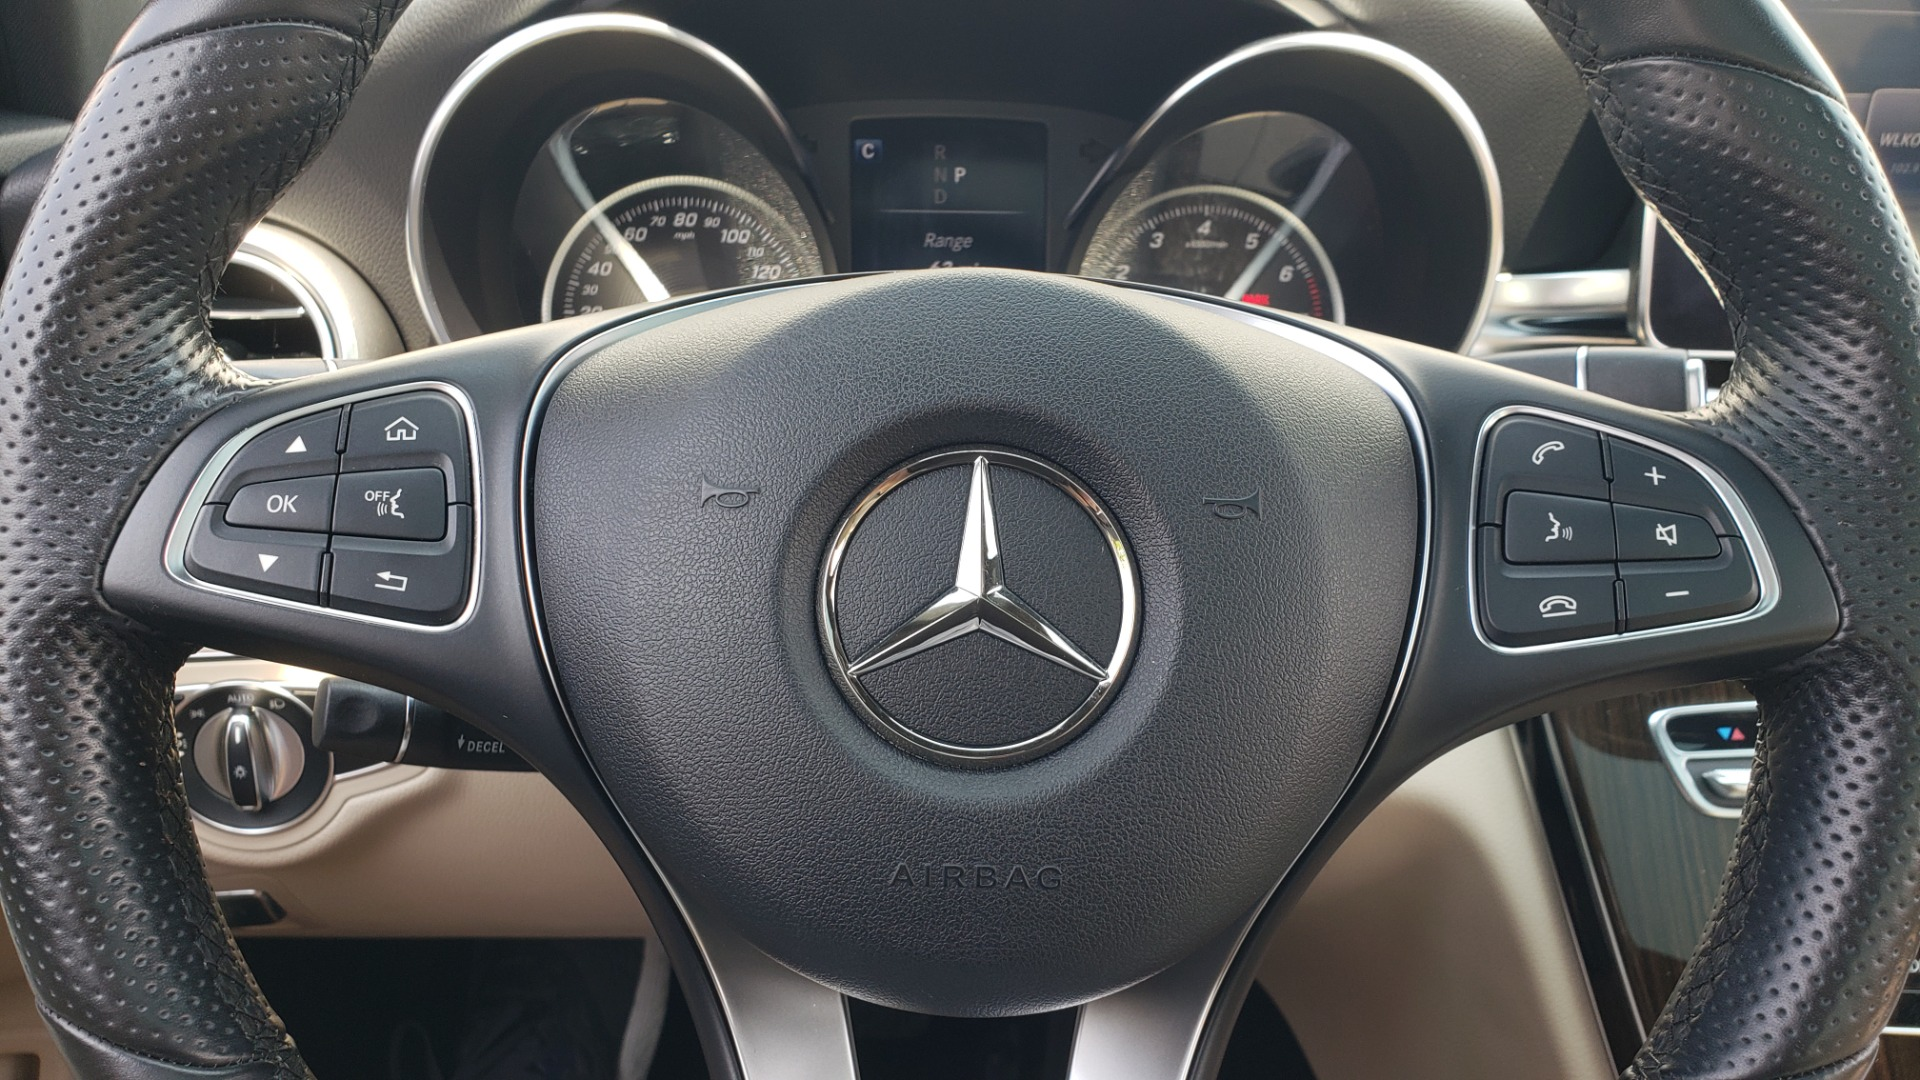 Used 2018 Mercedes-Benz C-CLASS C 300 4MATIC / PREMIUM / MULTIMEDIA / NAV / PANO-ROOF / BURMESTER for sale $30,495 at Formula Imports in Charlotte NC 28227 37